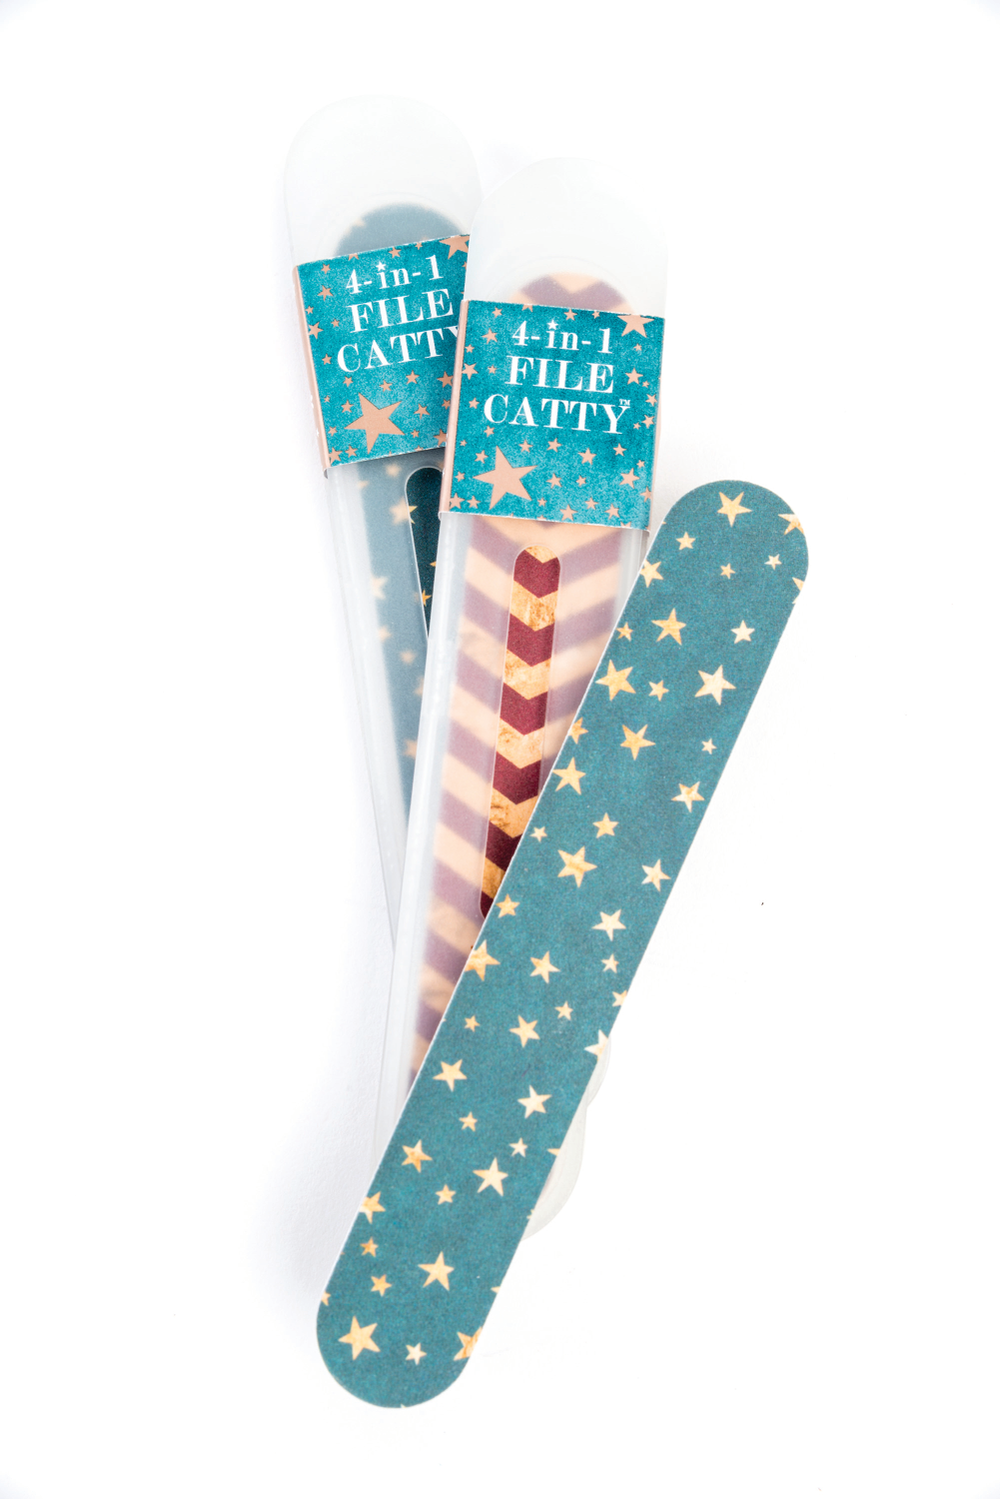 <p>Flowery&rsquo;s Starry Night 4-in-1 File Catty Collection includes 180/240-grit nail files with three new seasonal designs including Dazzled in Gold, Chevron, and Starry Night. The grab-and-go item is four tools in one and includes a sleek case, cuticle pusher, under the nail cleaner, and file.&nbsp;</p>